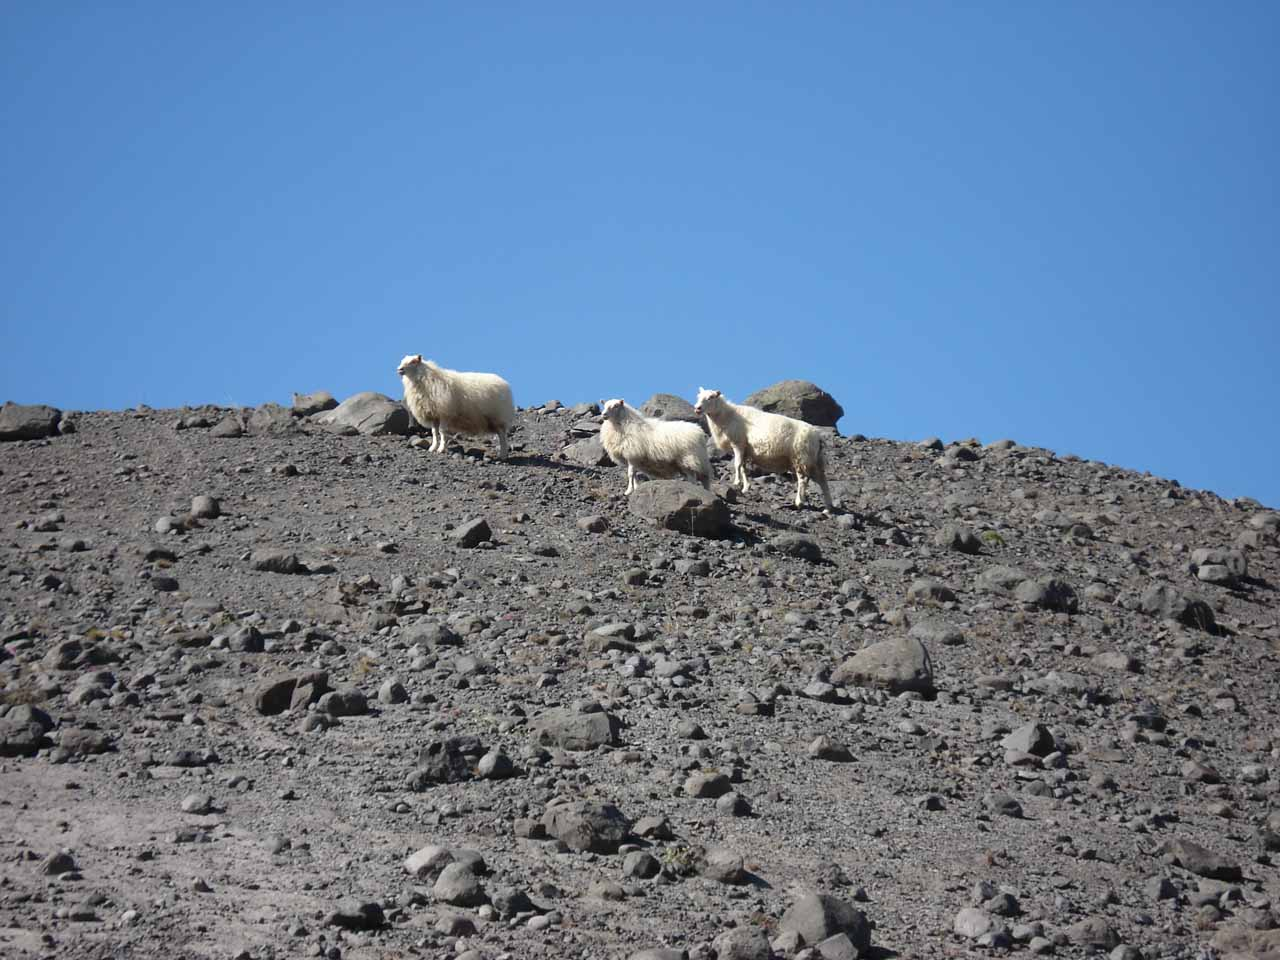 We noticed this trio of sheep looking for grass to graze along the trail